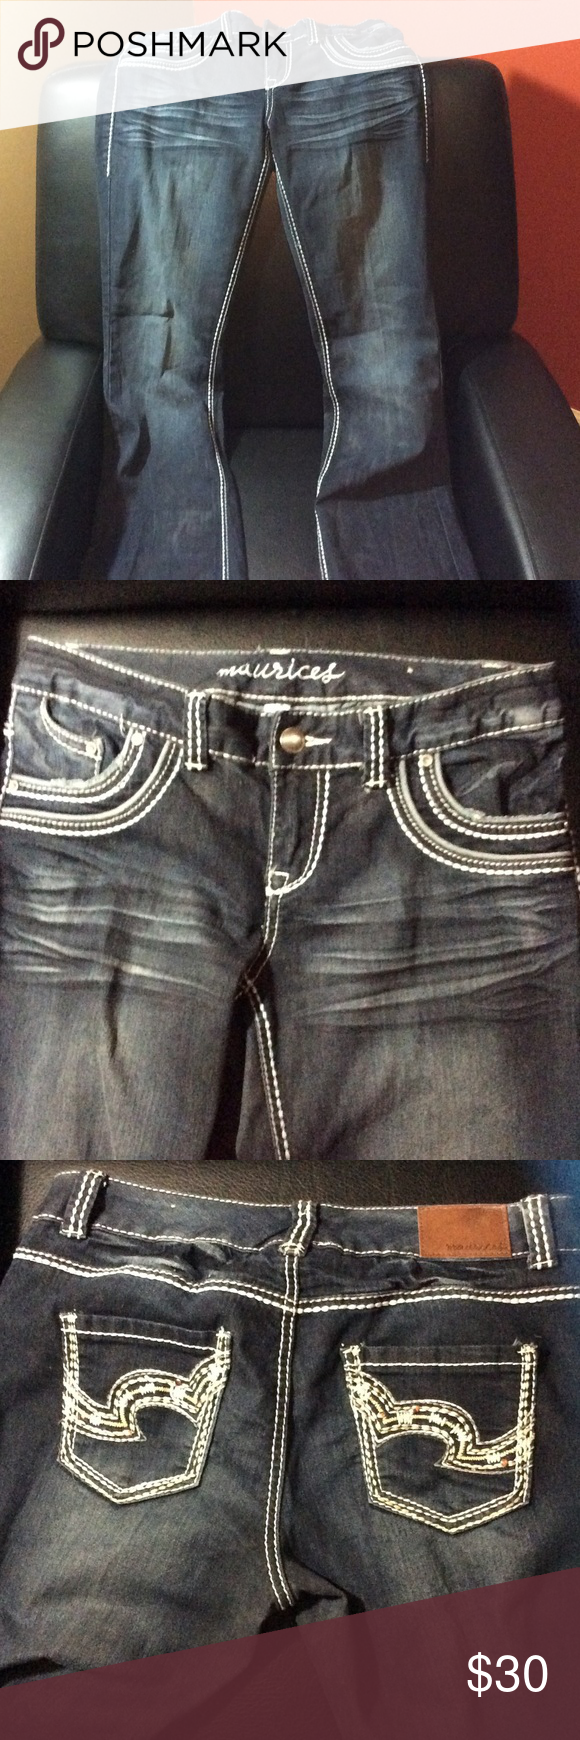 Like New Maurice's jeans 7/8 EUC! Flare/boot cut fit. Seem lower cut too Maurices Jeans Boot Cut